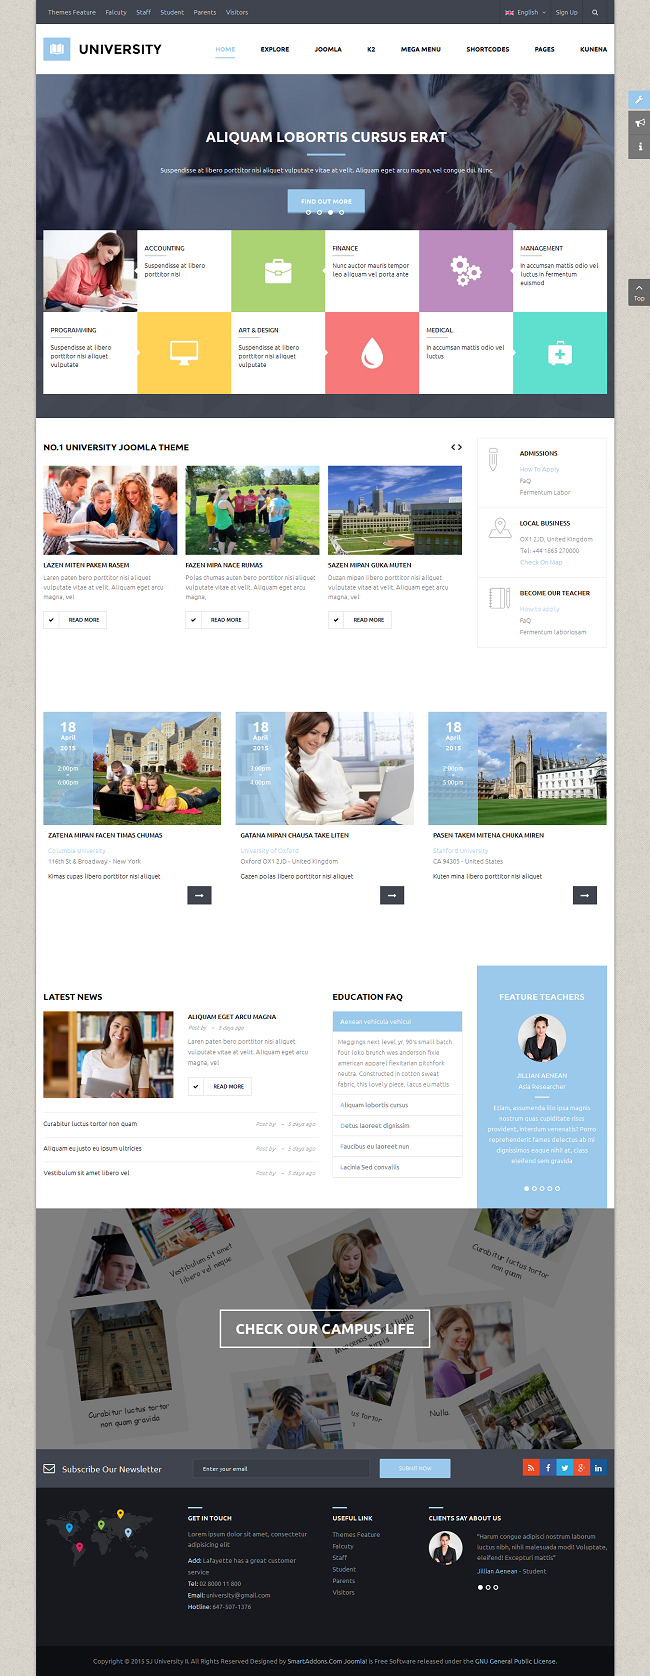 SJ University II - Responsive Joomla Educational Template - 03_index-boxed.png